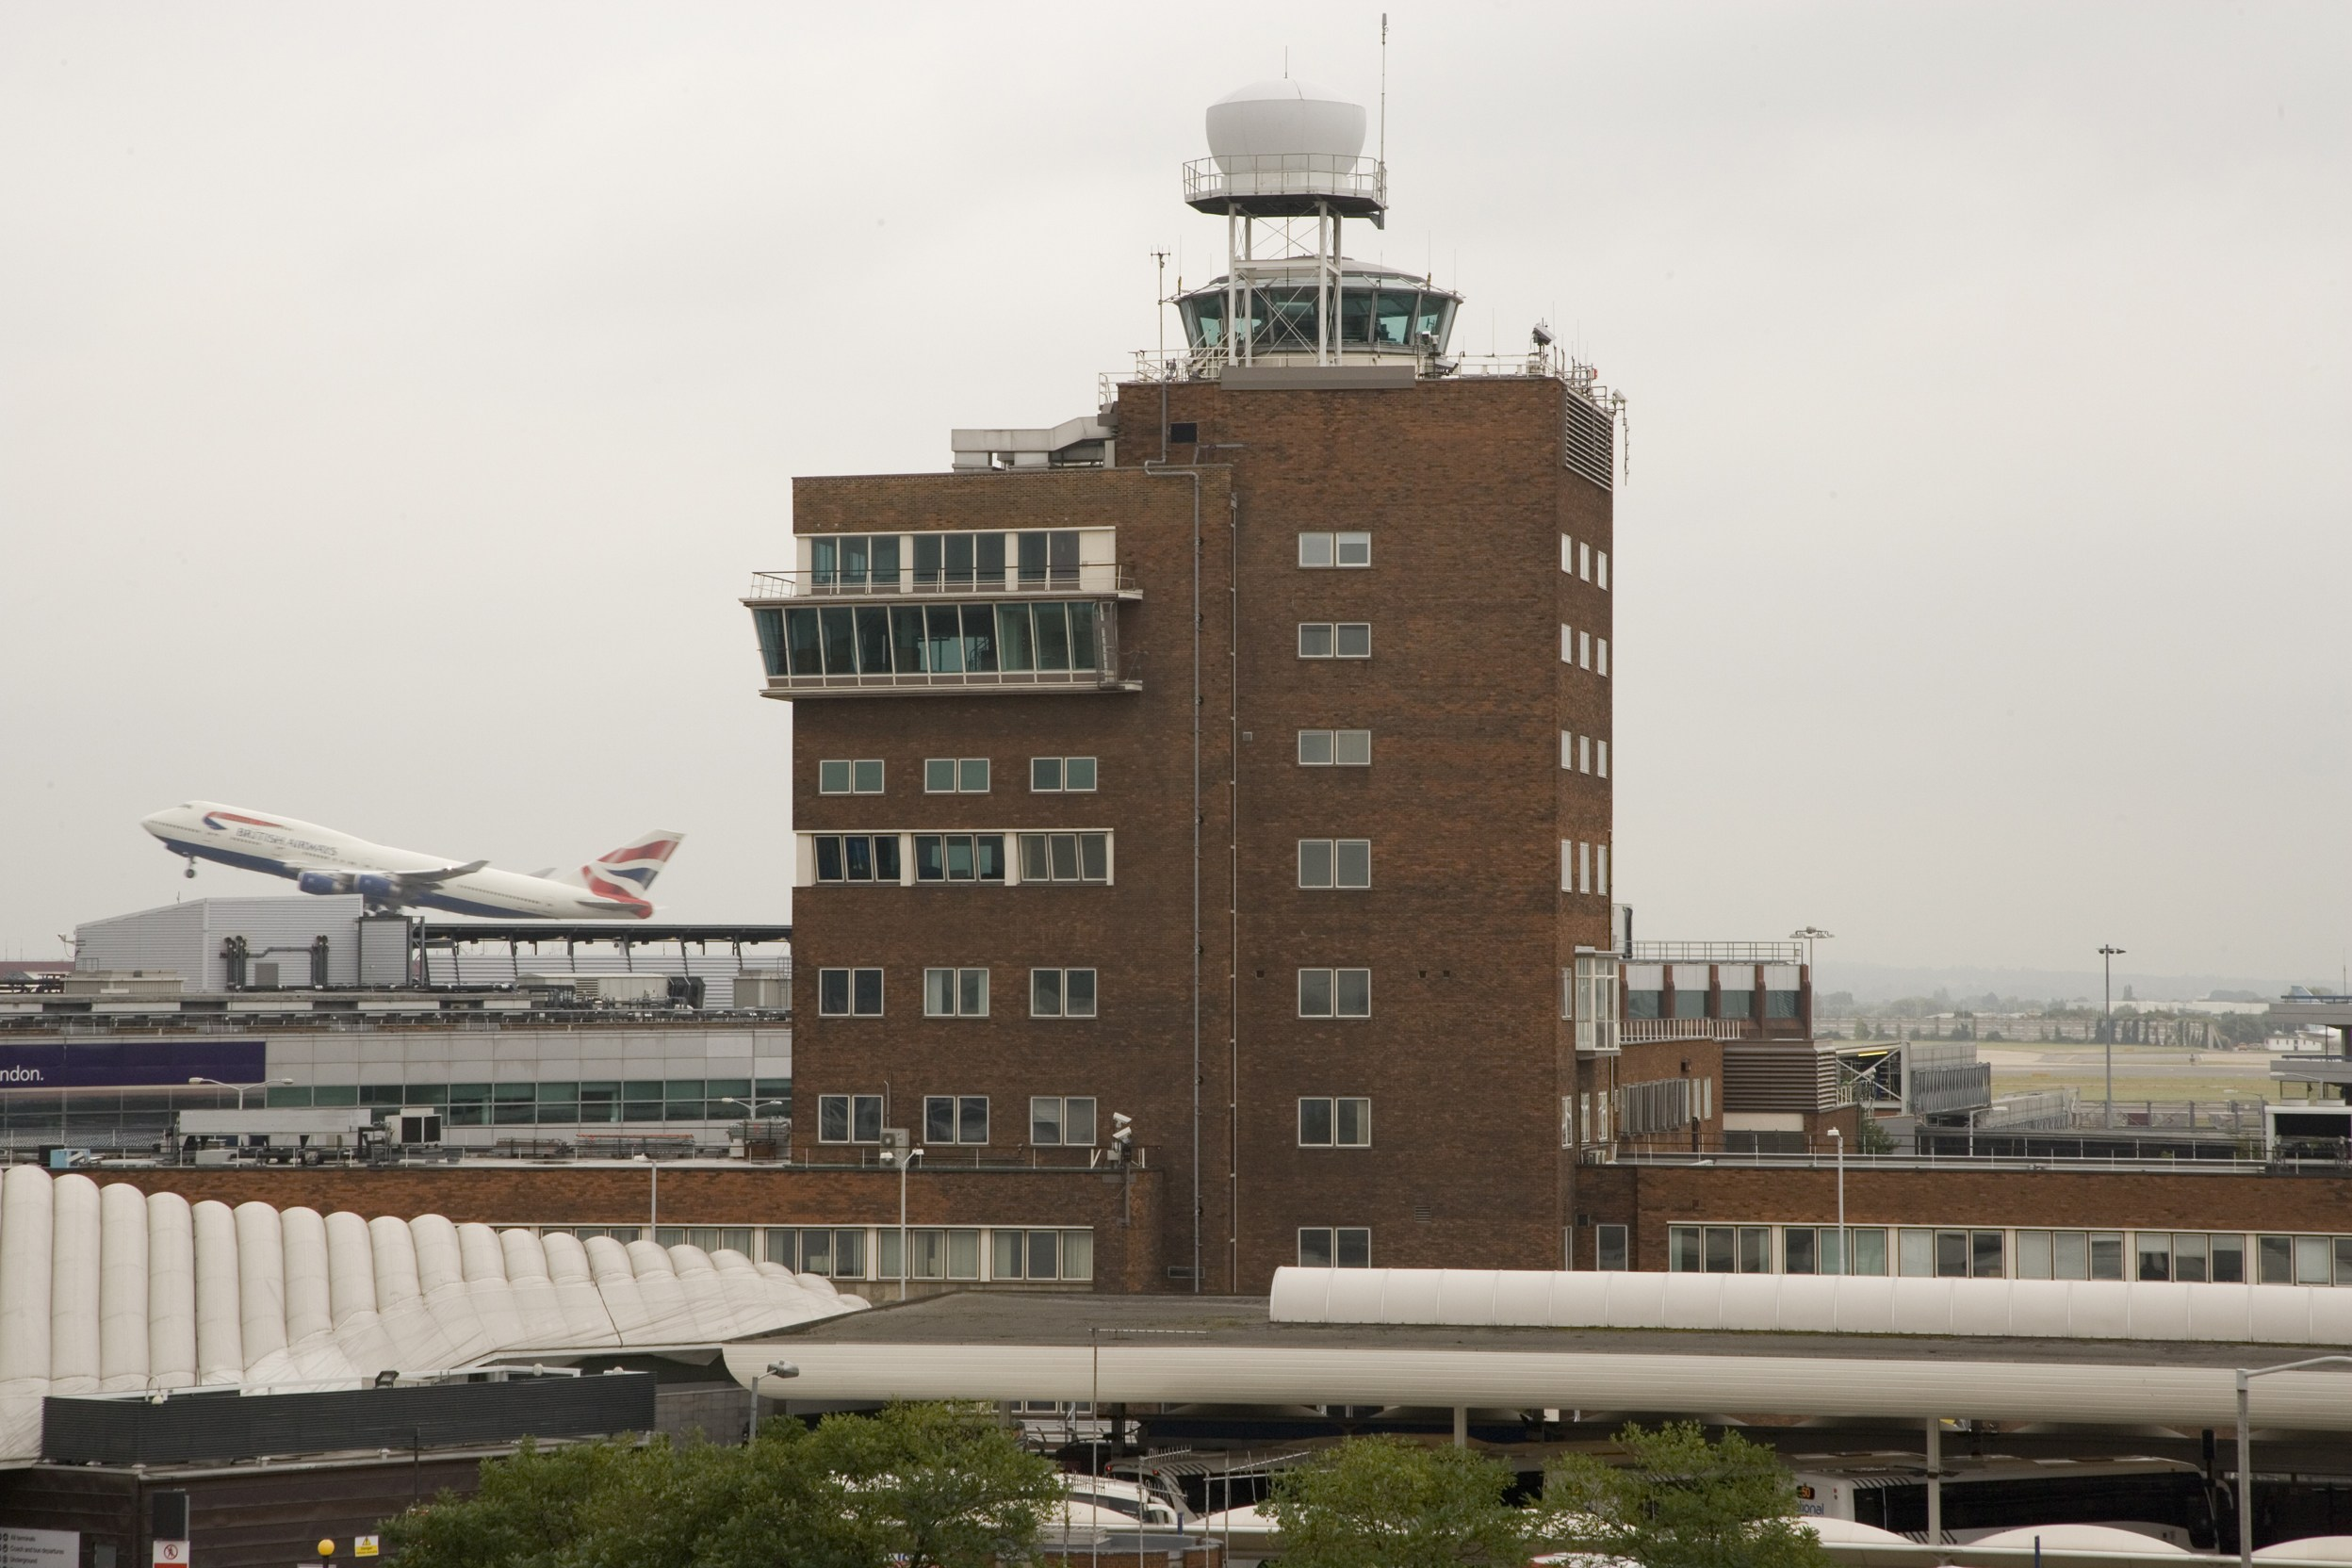 The-old-control-tower.jpg